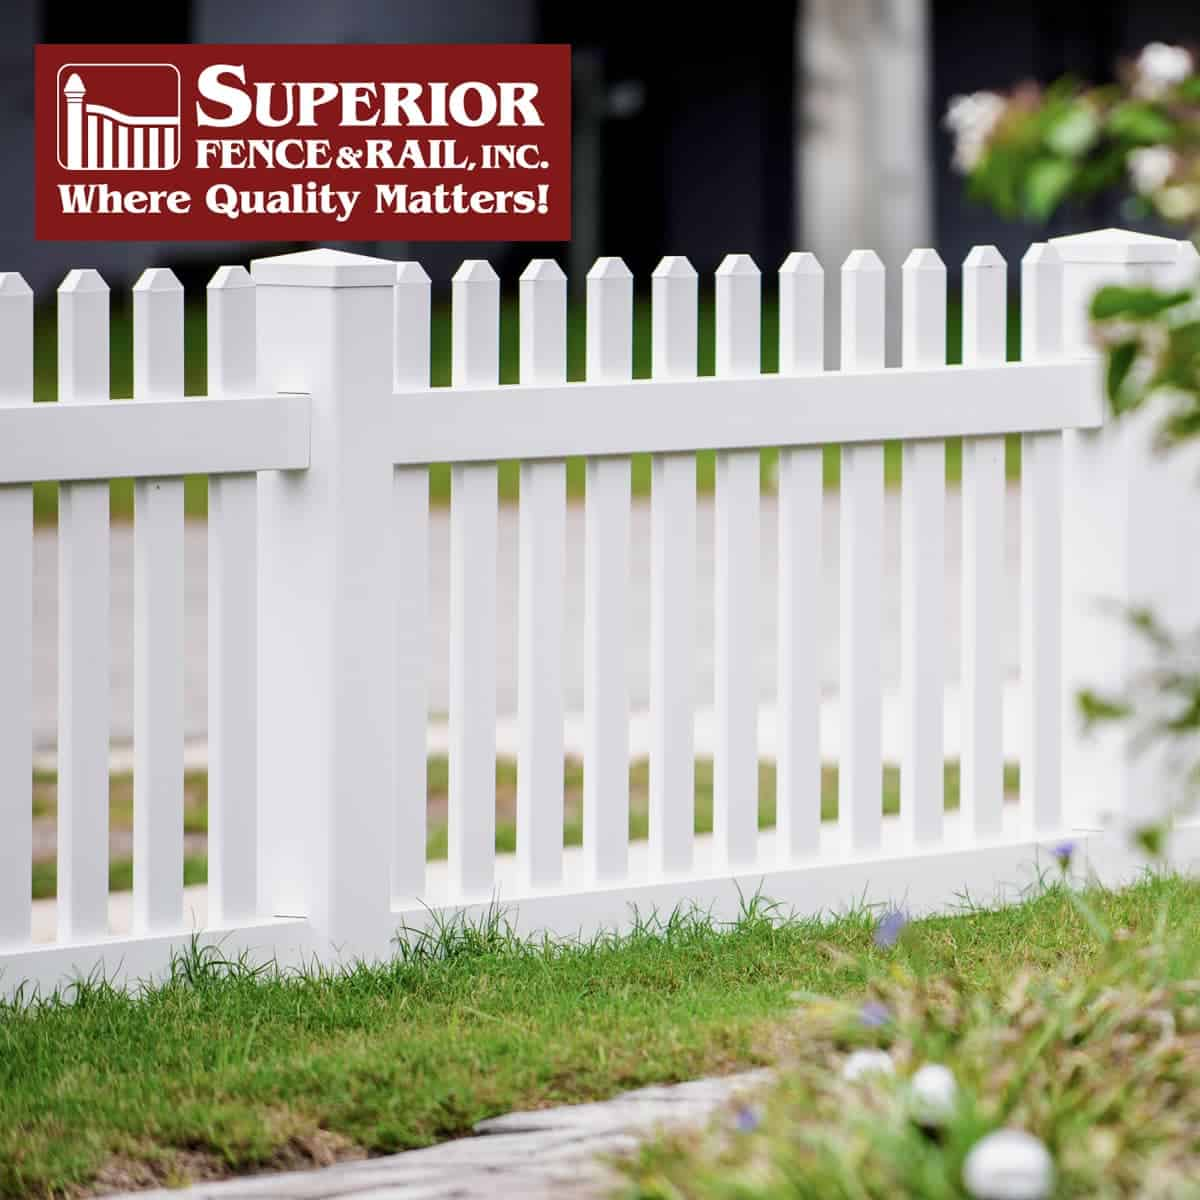 Riverdale fence company contractor